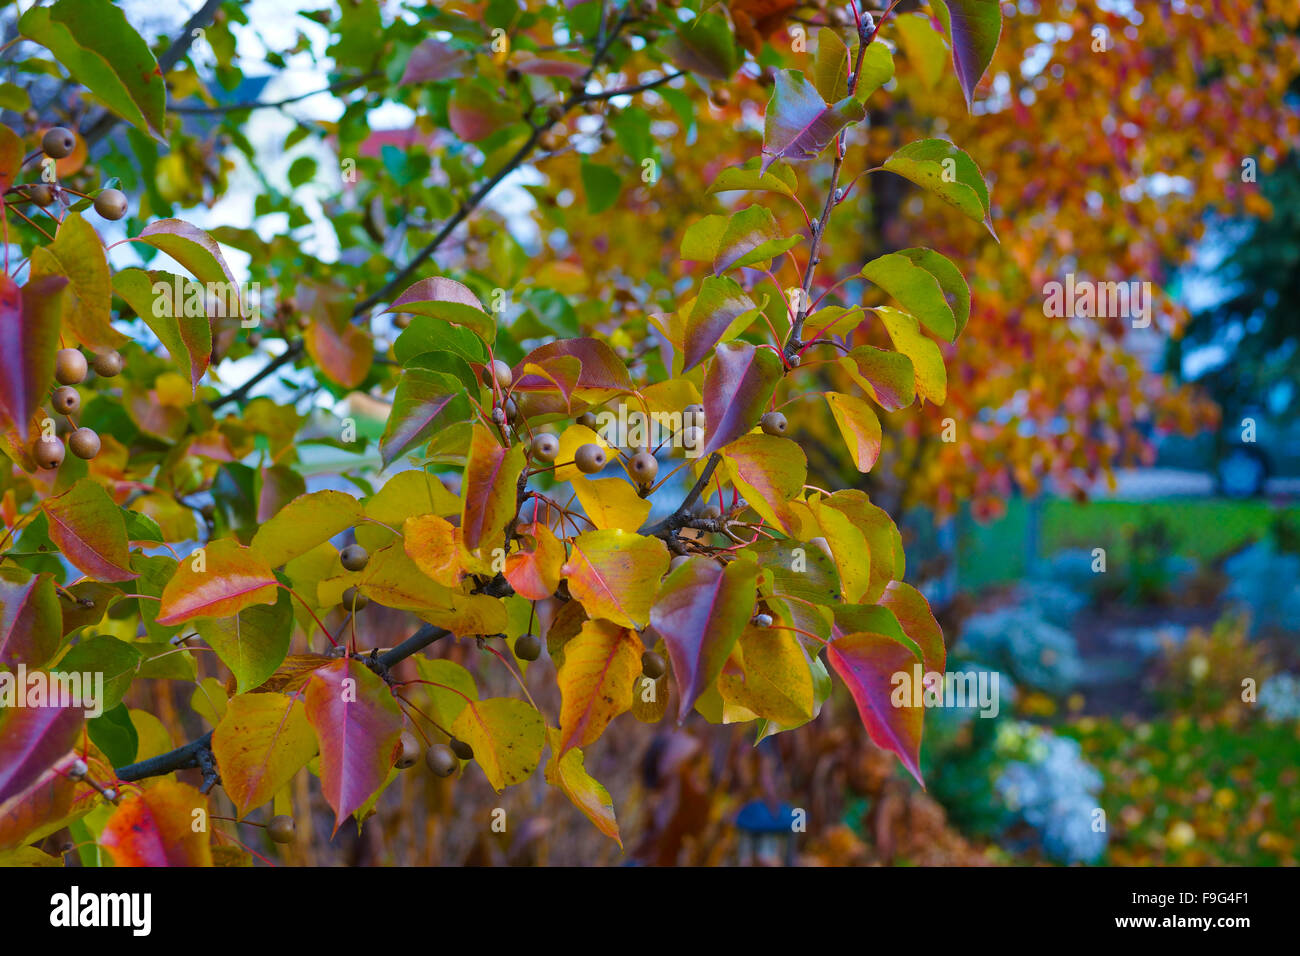 Flowering Callery Pear Tree Fruit Close up - Stock Image